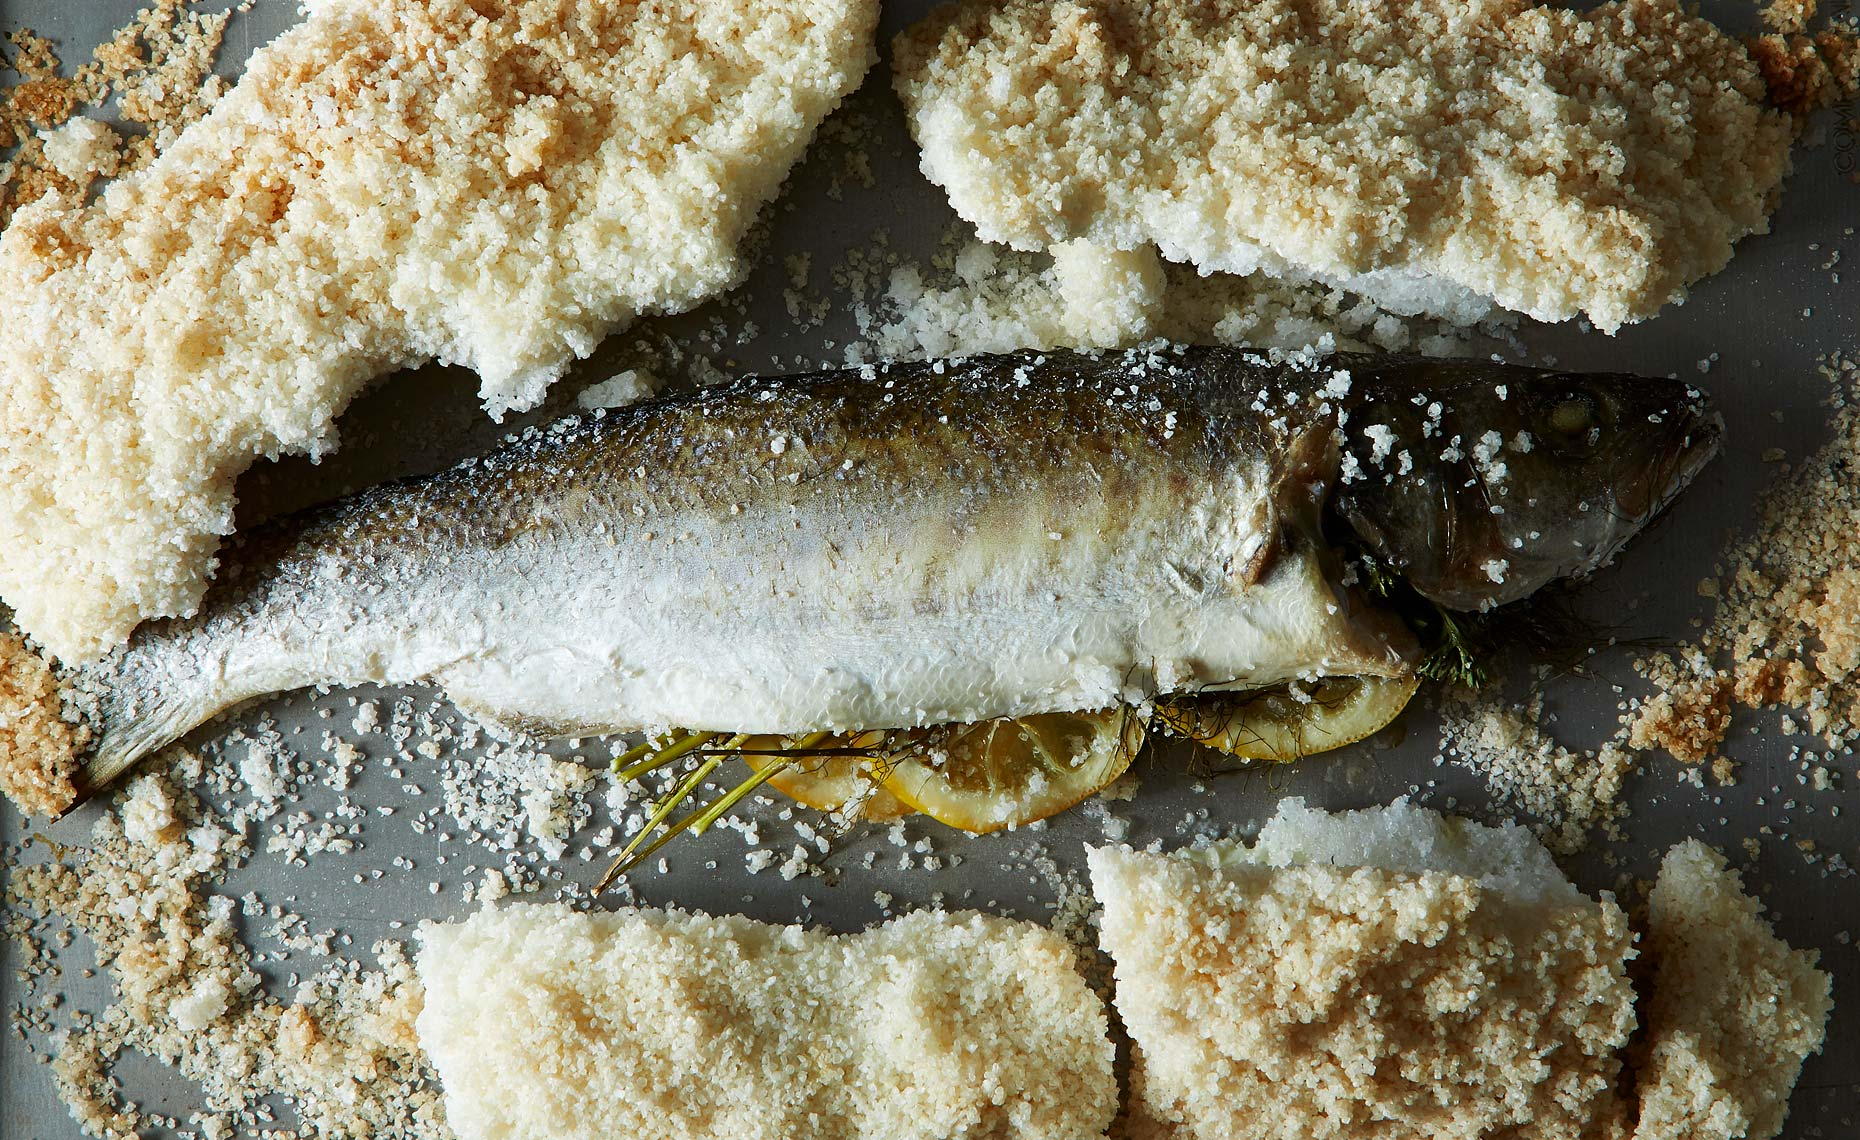 041_mark_weinberg_whole-baked-fish-in-sea-salt-_food52_05-06-14_0444